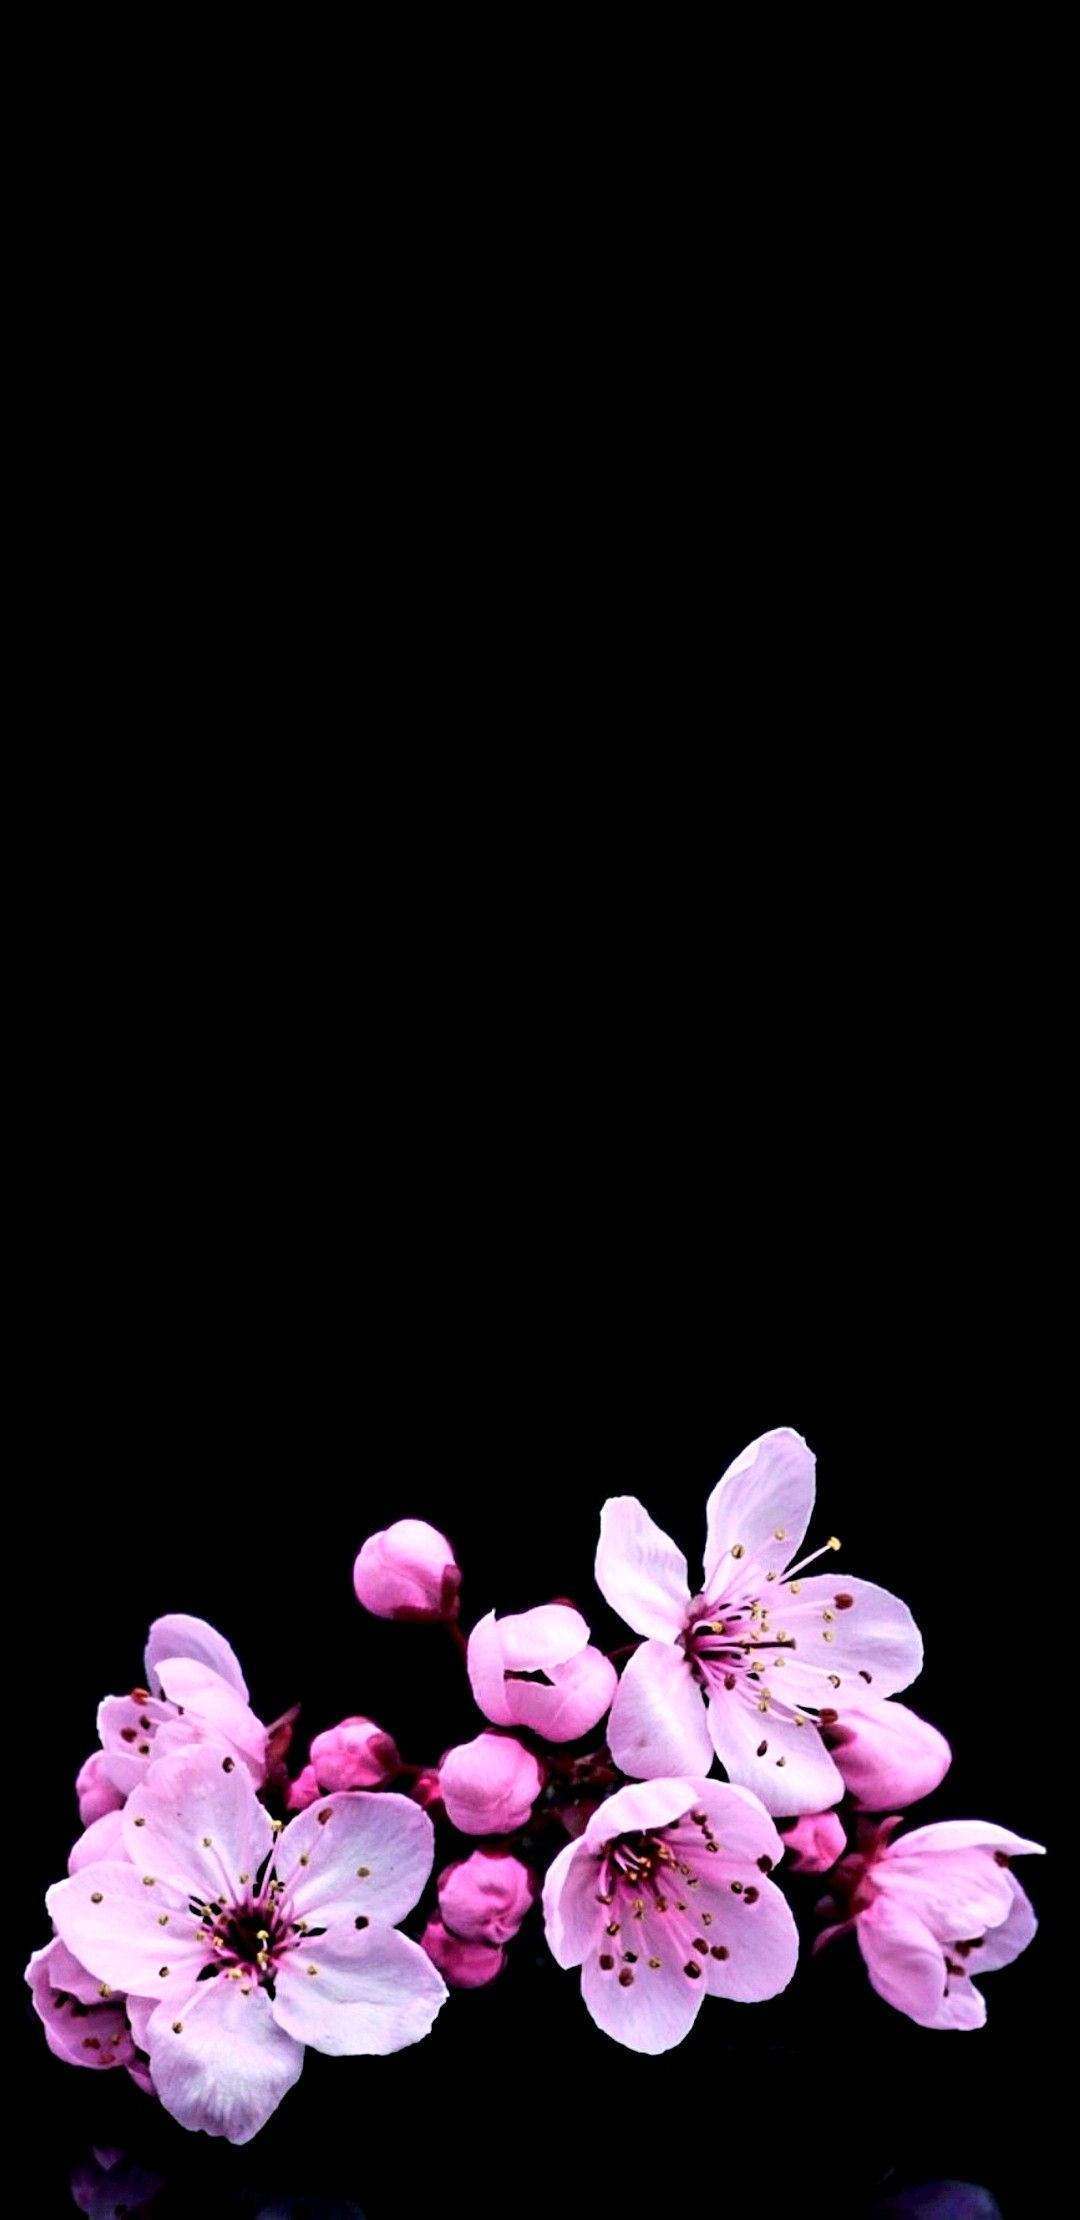 Most Perfect Dark Iphone Background Ideas For Your Iphone Xs Wallpaper Cherry Blossom Wallpaper Iphone Iphone Background Art Cherry Blossom Wallpaper